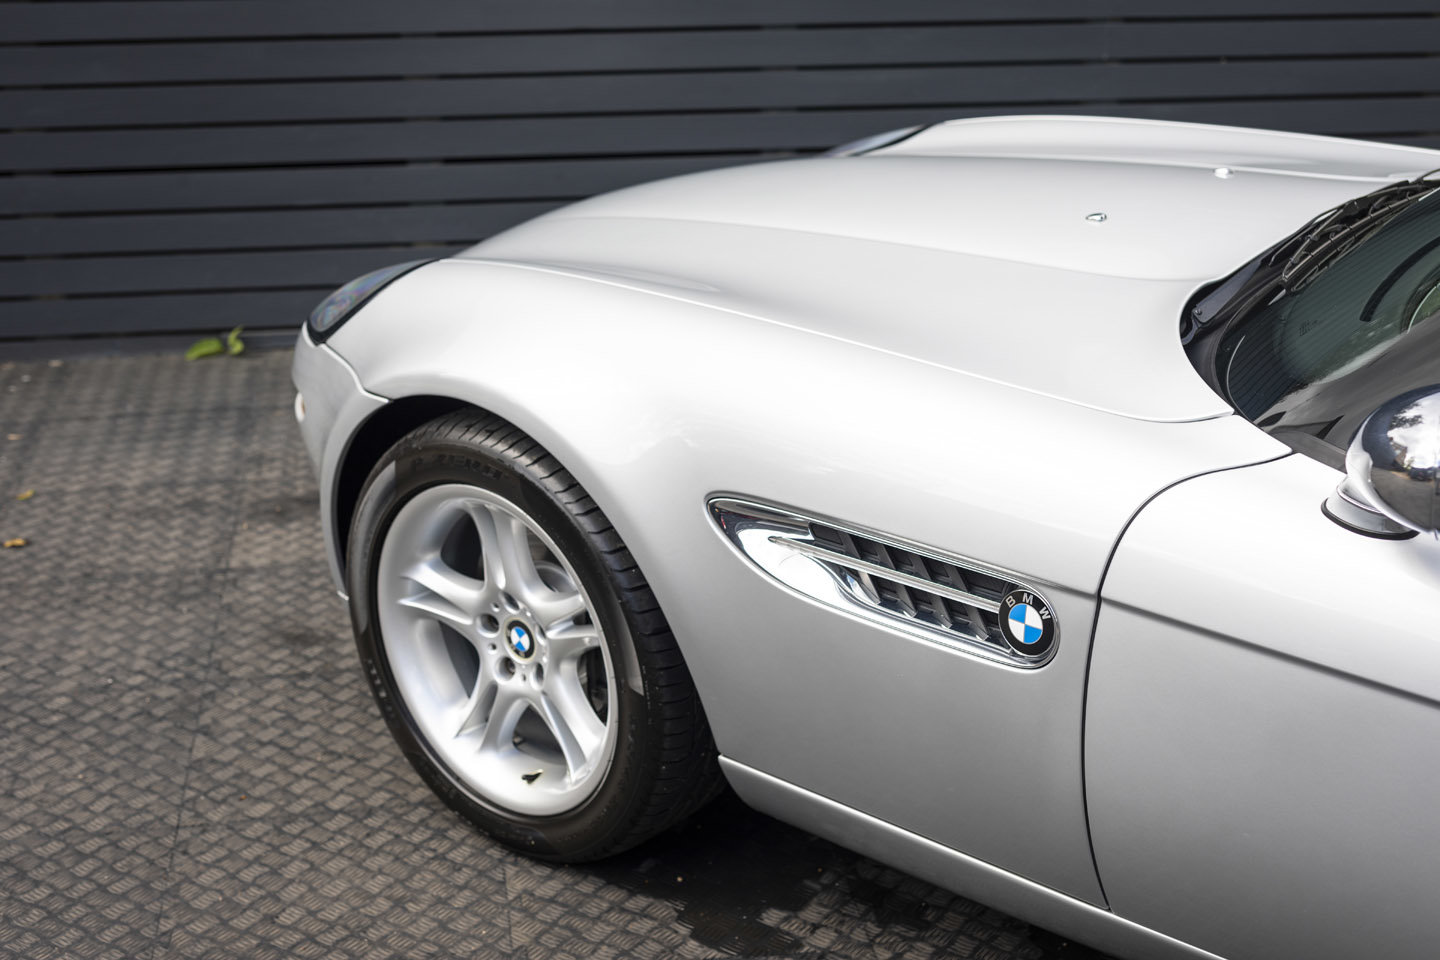 2001 BMW Z8 Roadster ONLY 10500 MILES UK CAR For Sale (picture 19 of 22)